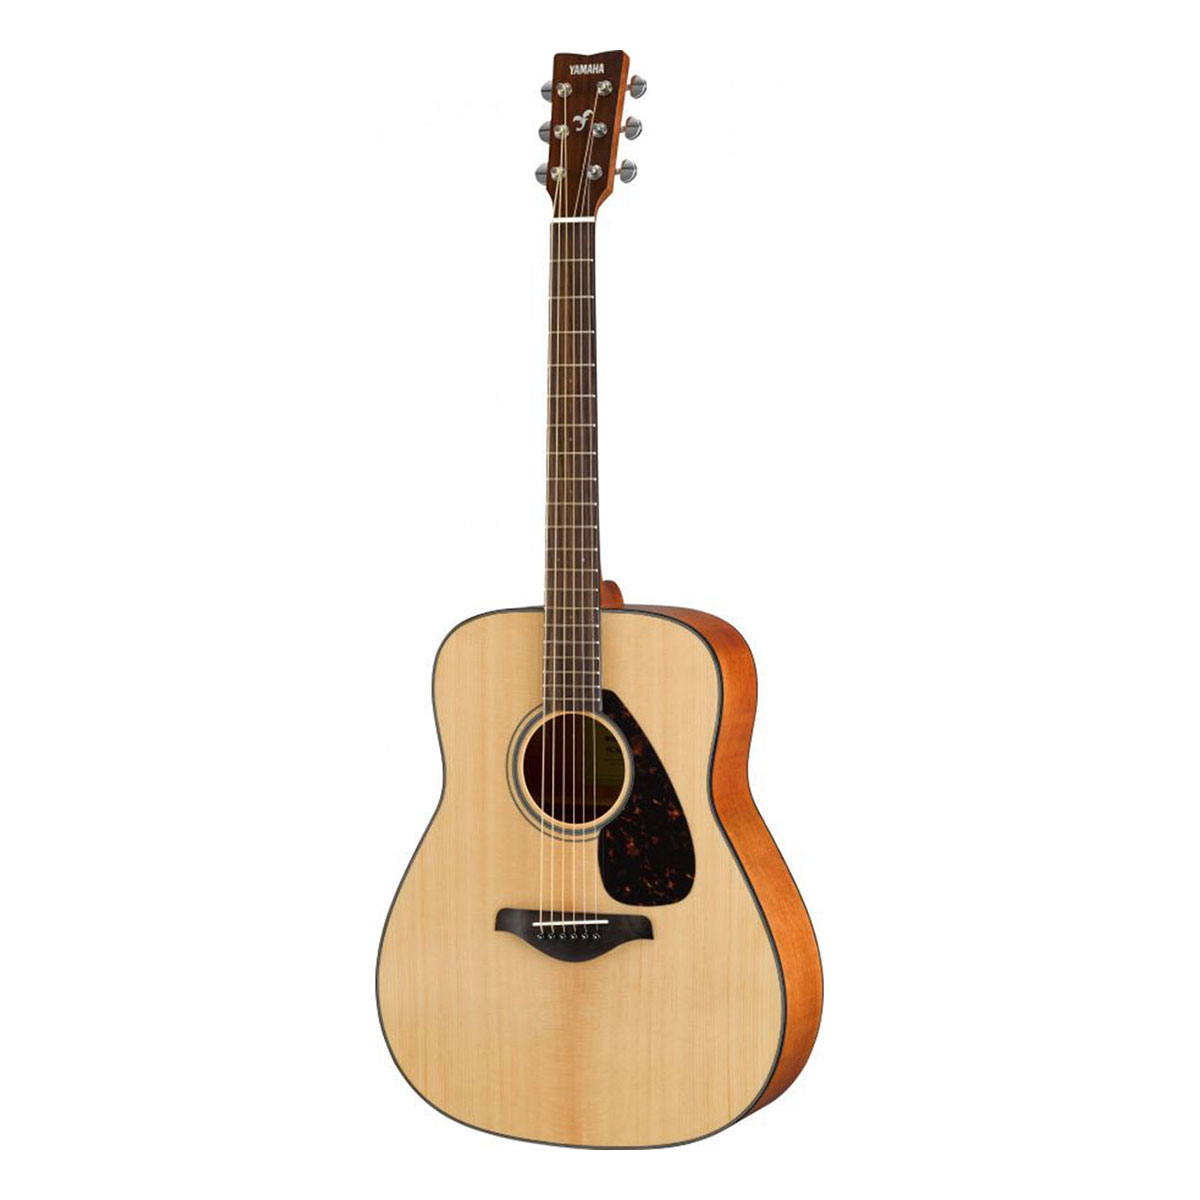 Yamaha - GFG800NT natural - guitare folk T